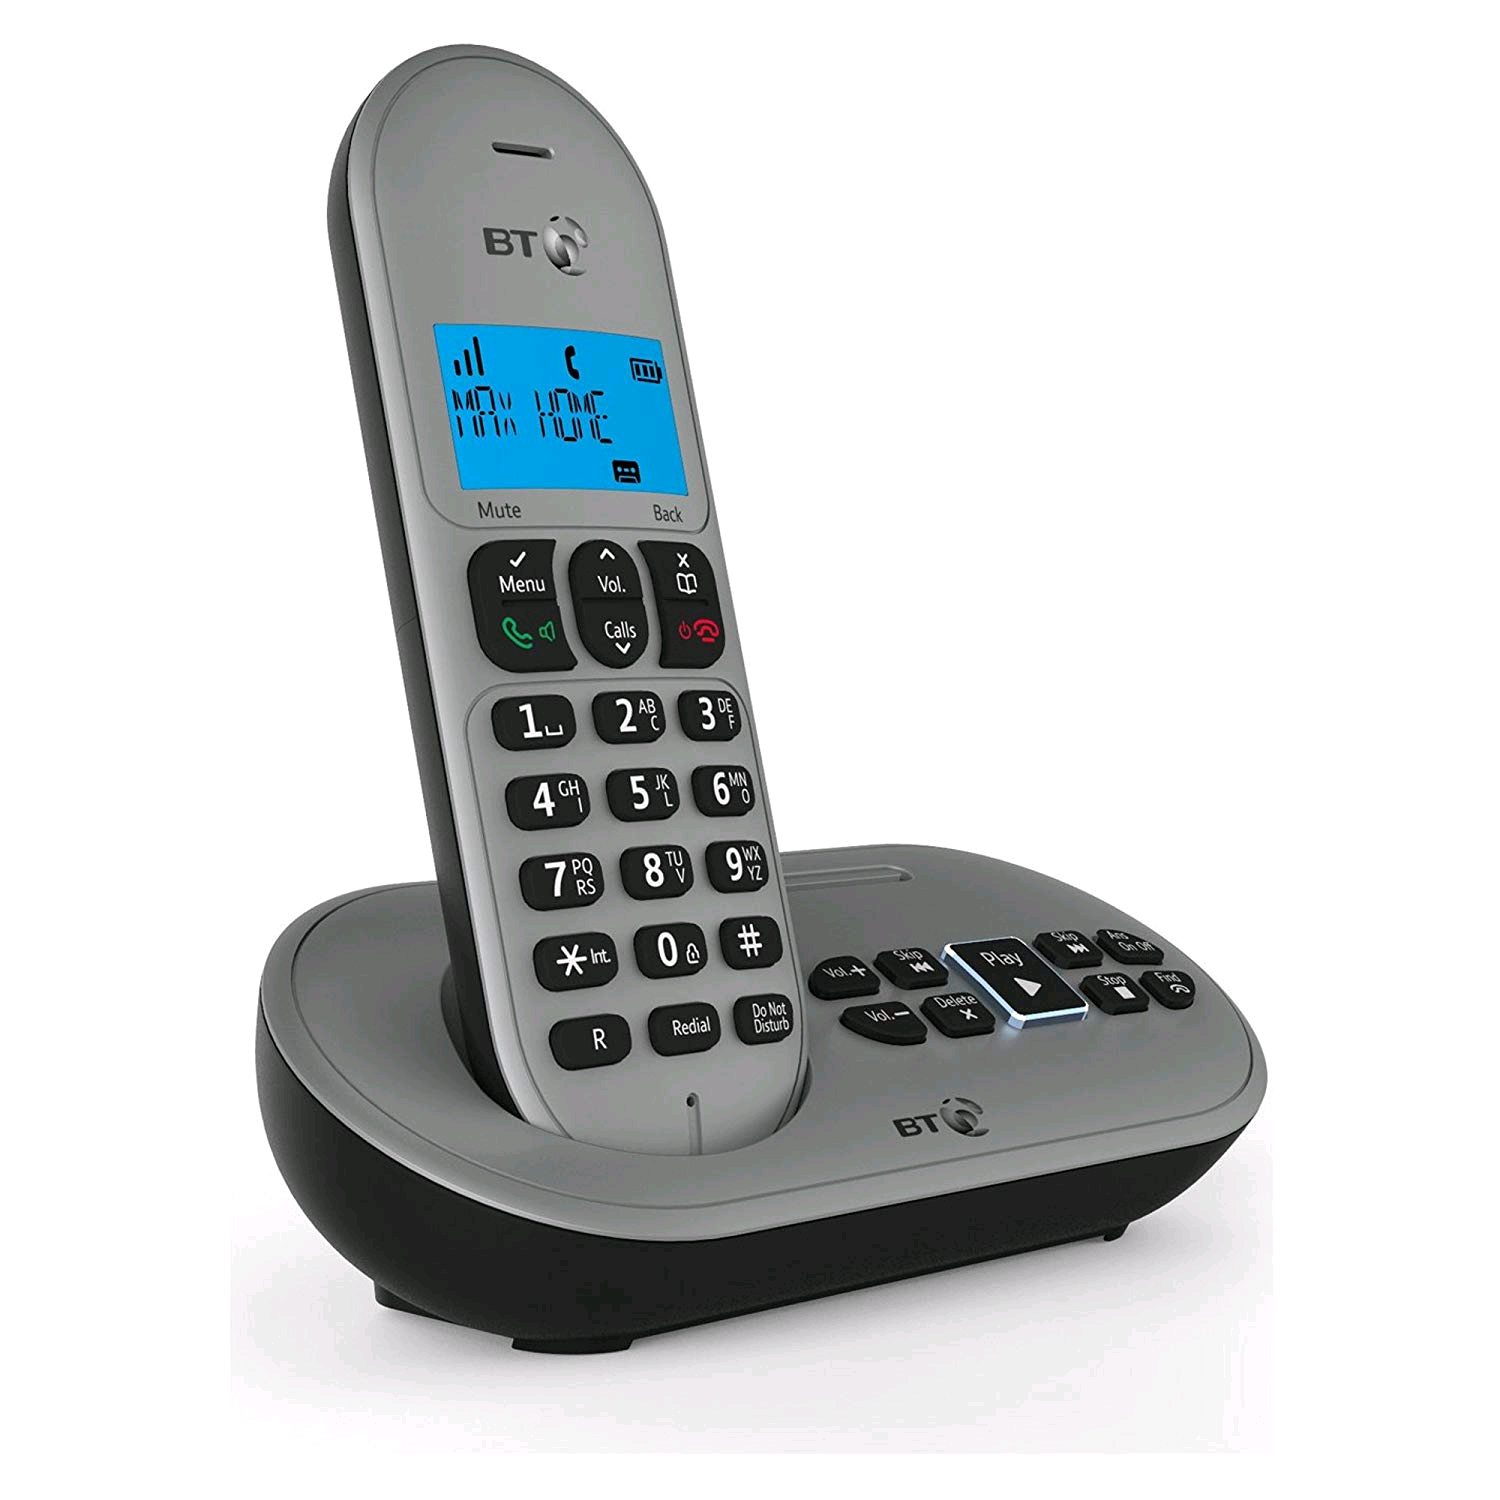 BT Twin Digital Cordless Telephone with Answering Machine